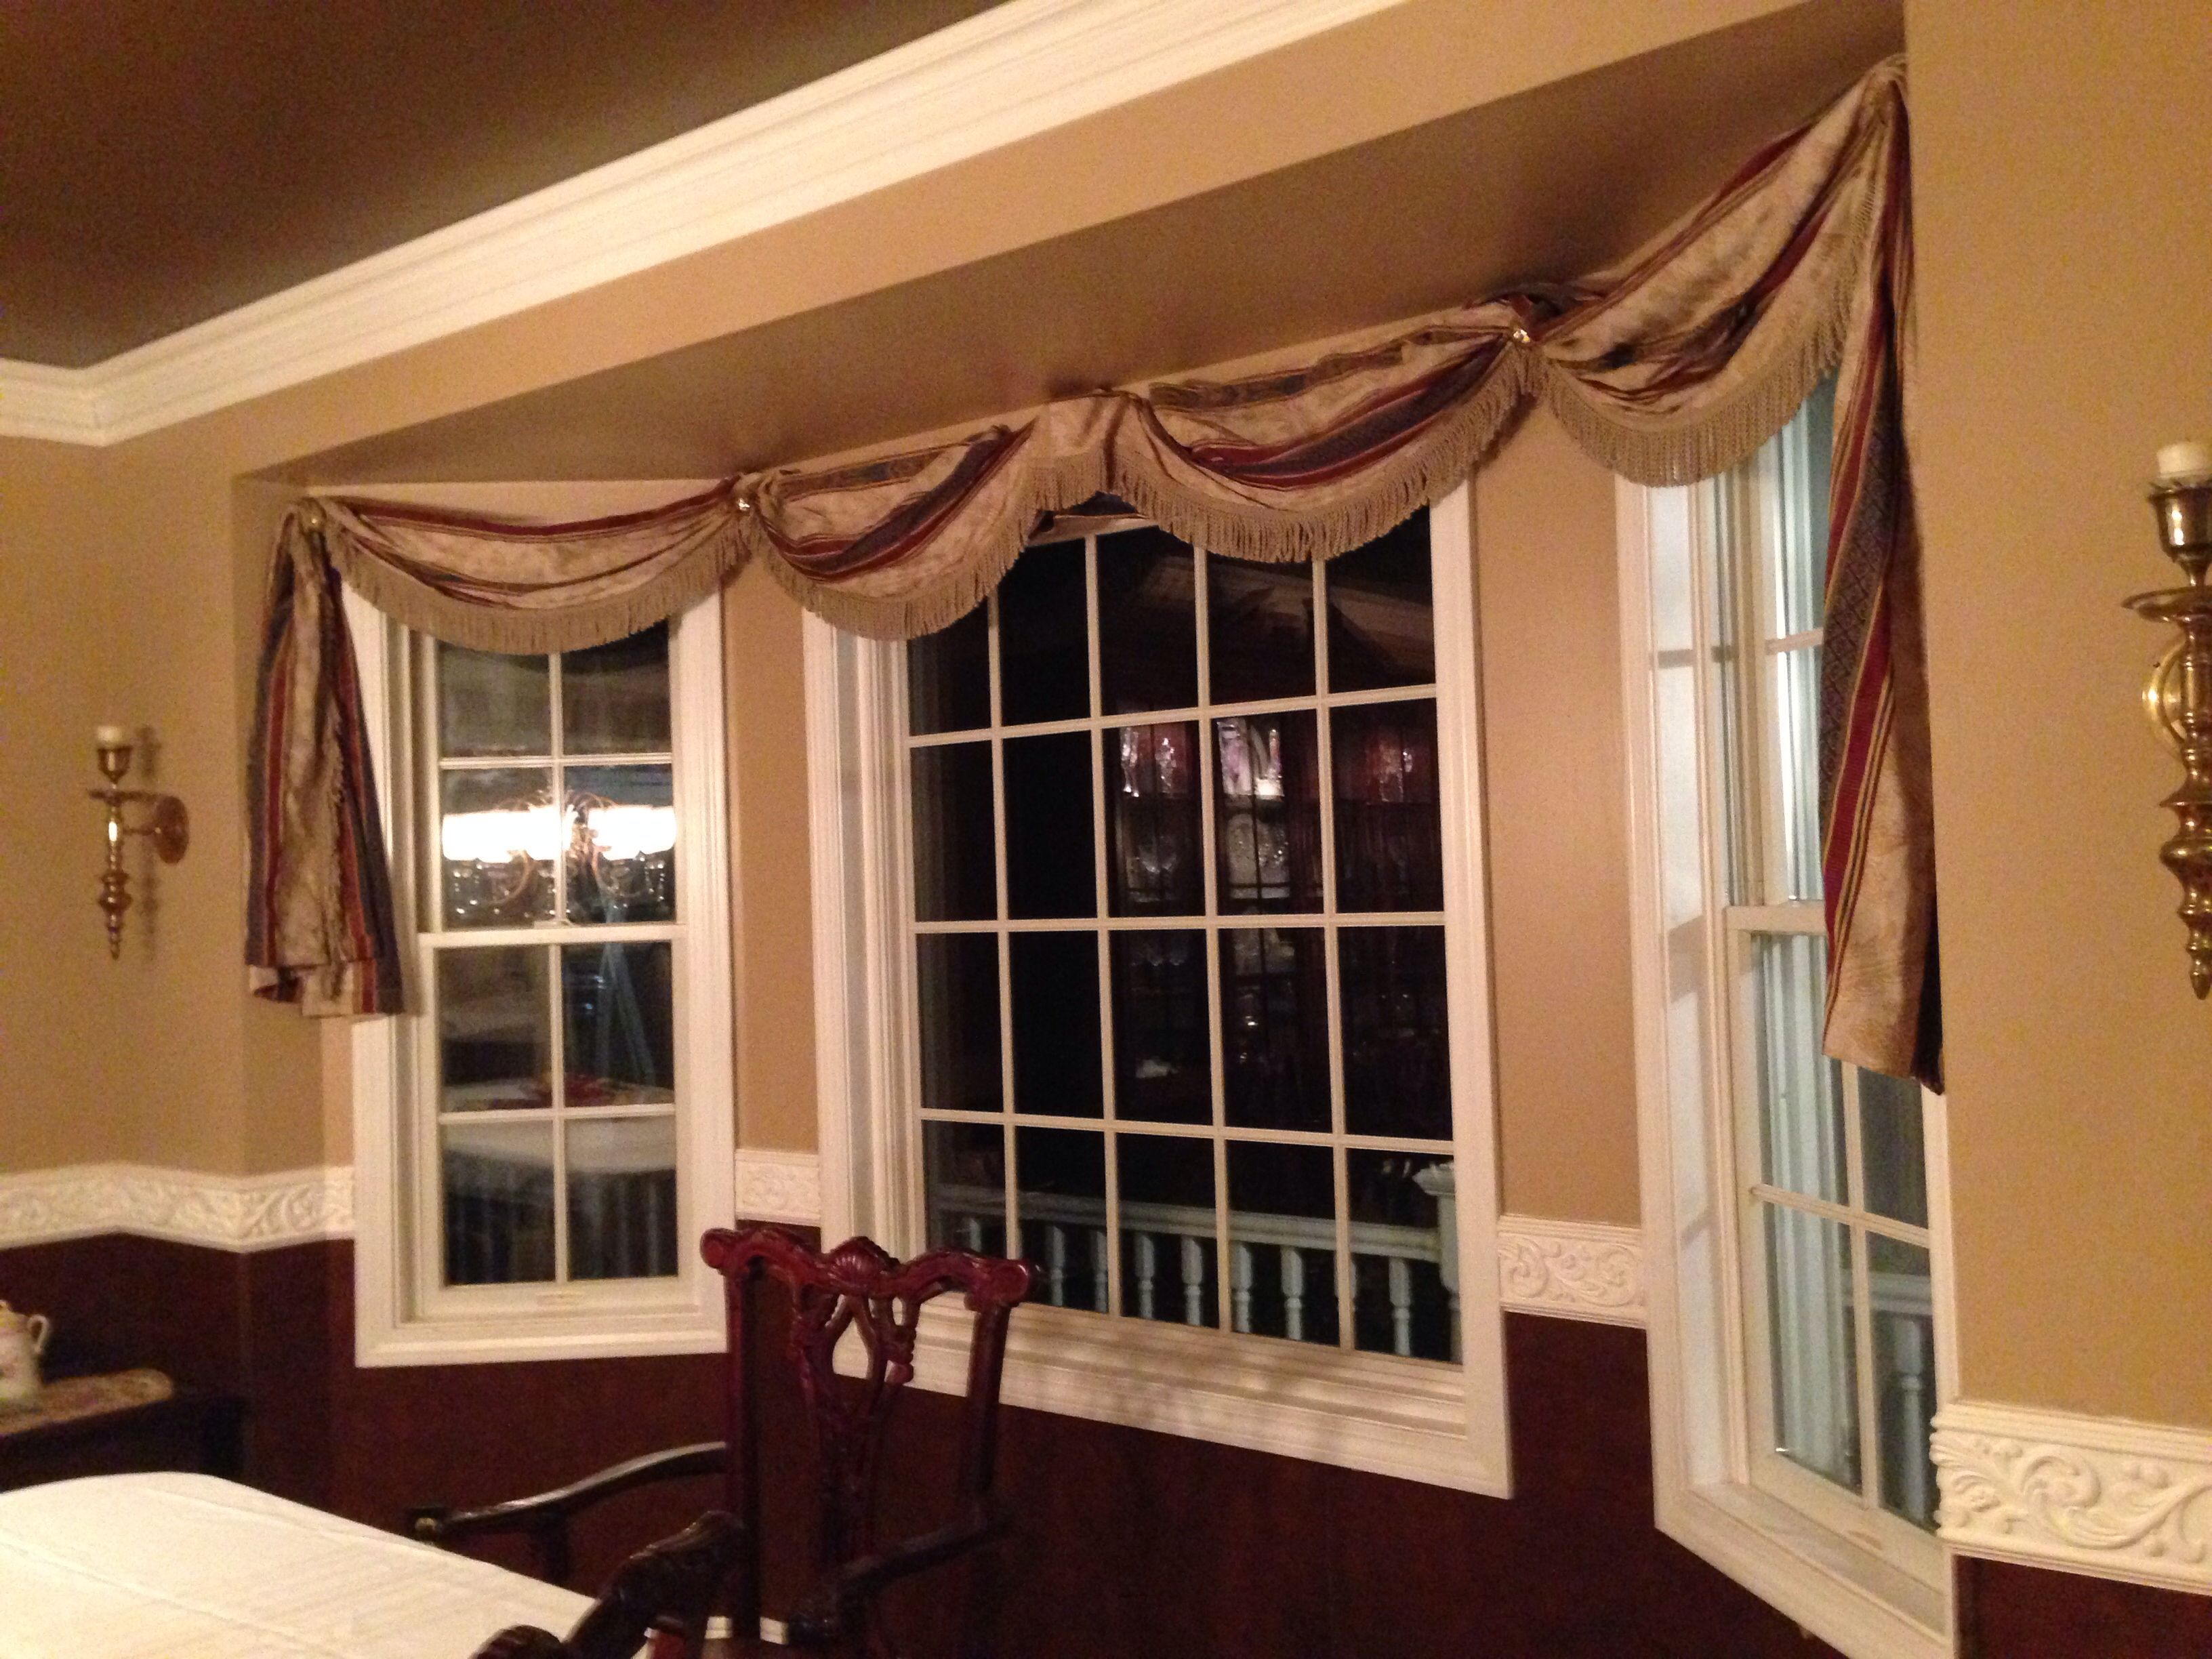 Window coverings arched windows  dining room with paneling and molding curtains u windows  home